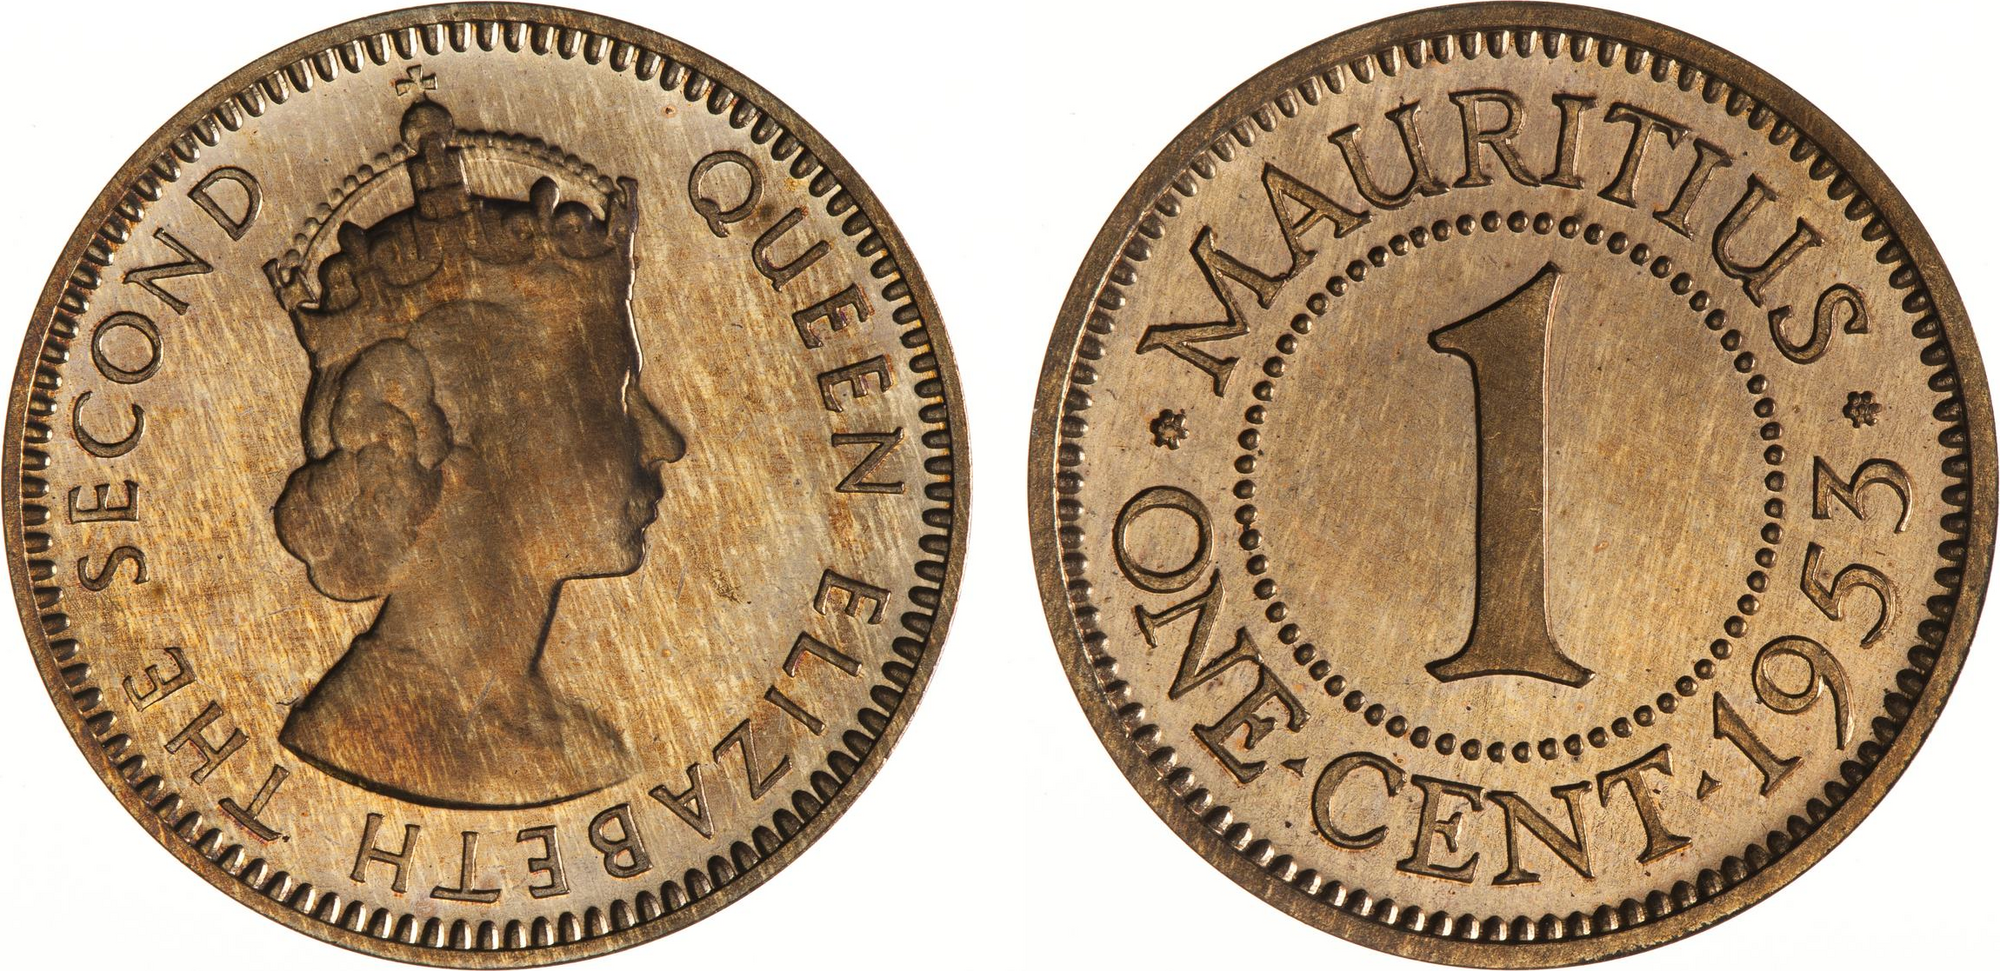 Mauritian 1 cent coin | Currency Wiki | FANDOM powered by Wikia